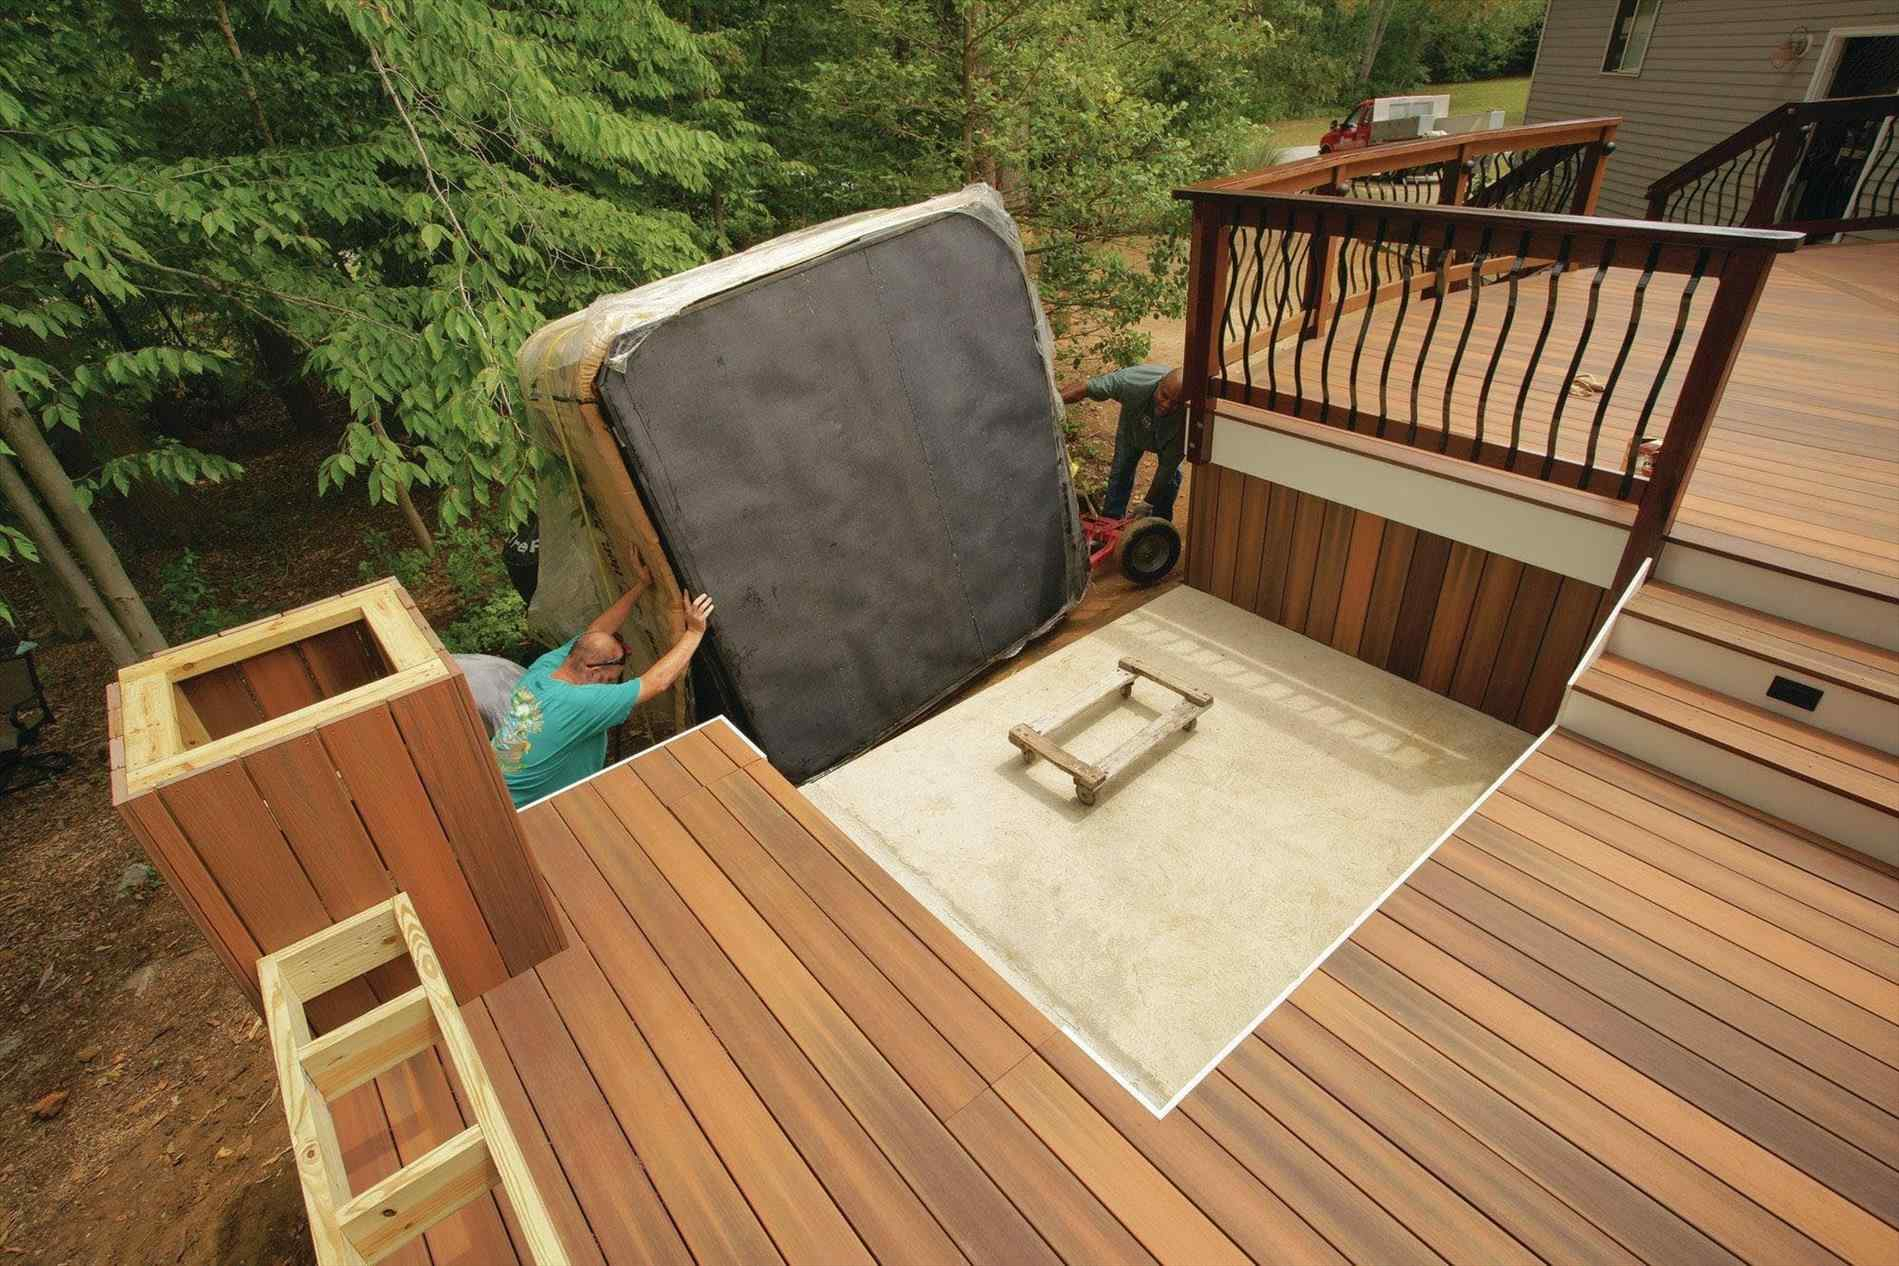 Deck Design For Hot Tub Support Decks Ideas regarding 13 Genius Concepts of How to Craft Backyard Deck Ideas With Hot Tub